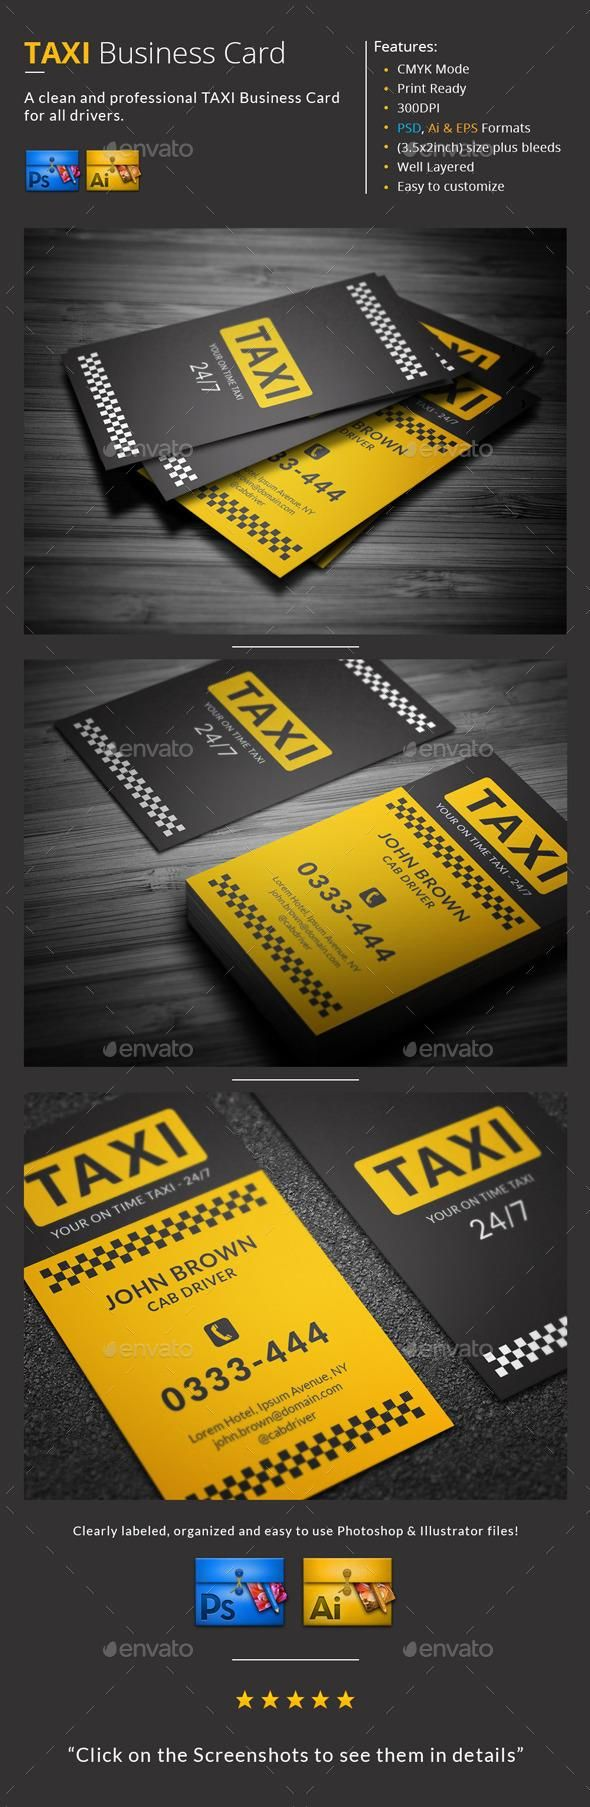 62 best taxi images on pinterest app ui design bays and brochures taxi business card magicingreecefo Gallery